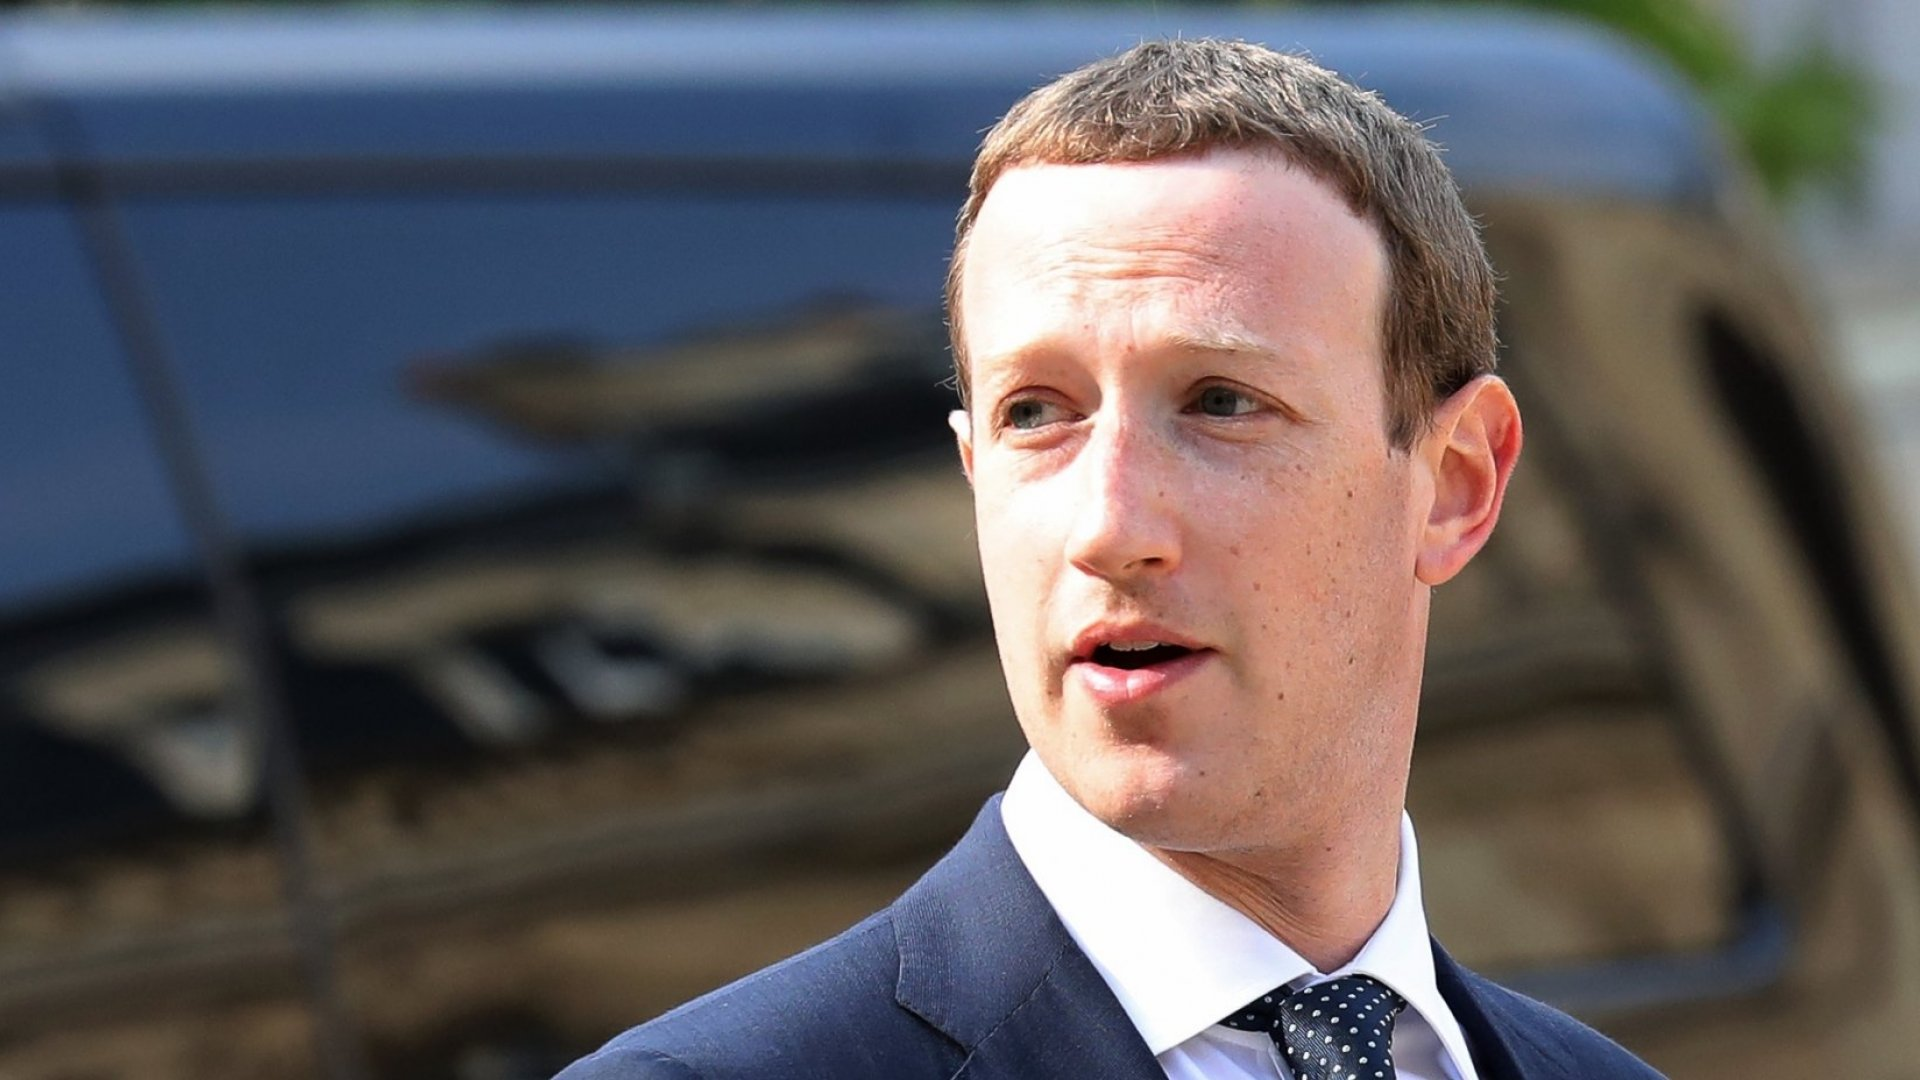 Mark Zuckerberg Wrote a 3,260-Word Memo on How Facebook Is Fighting Election Interference. Here Are the Highlights